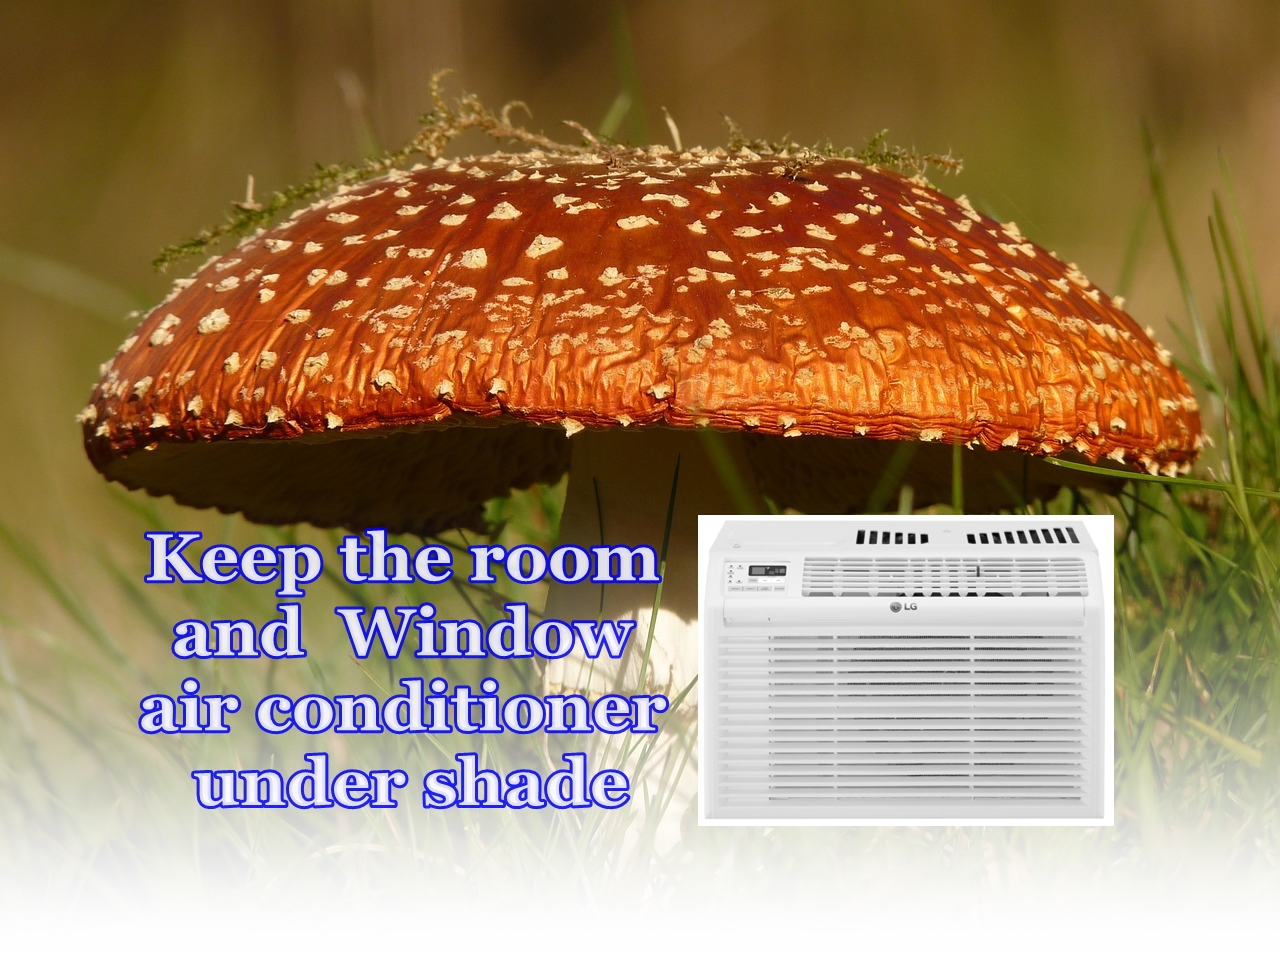 what size window air conditioner do I need-shade